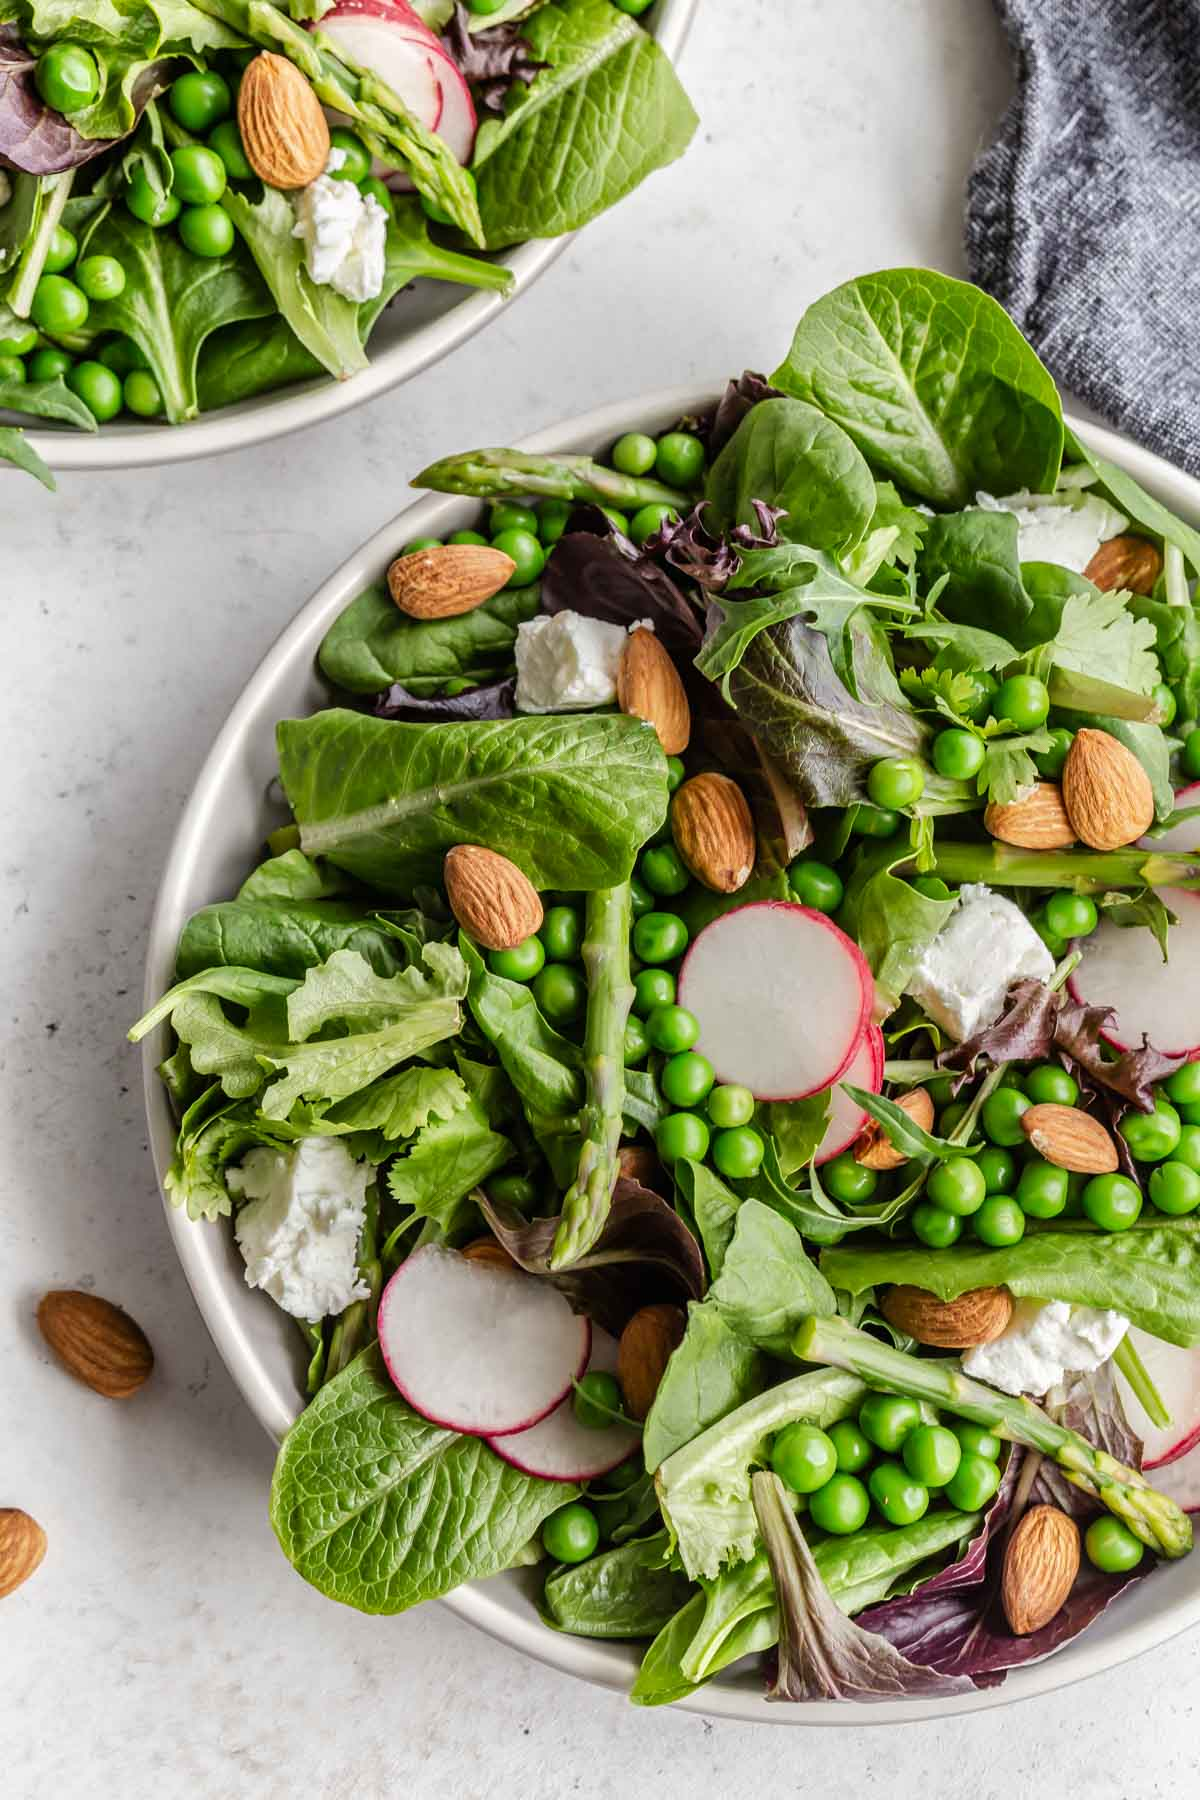 Up close overhead view of an asparagus and pea salad on a plate.